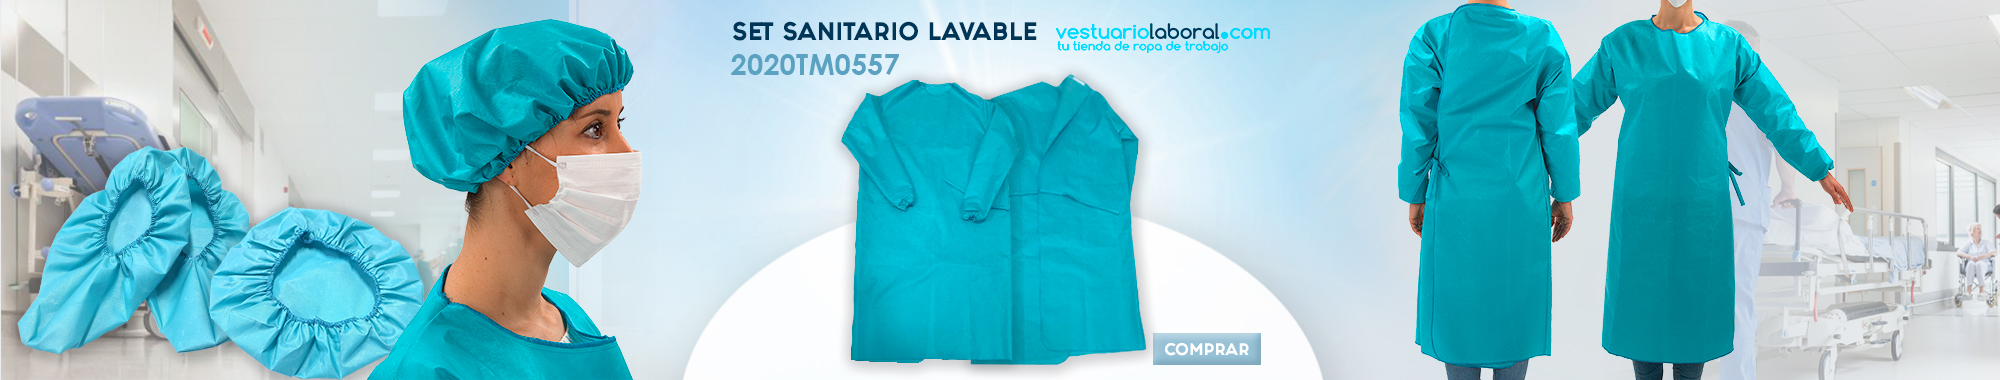 Set sanitario lavable